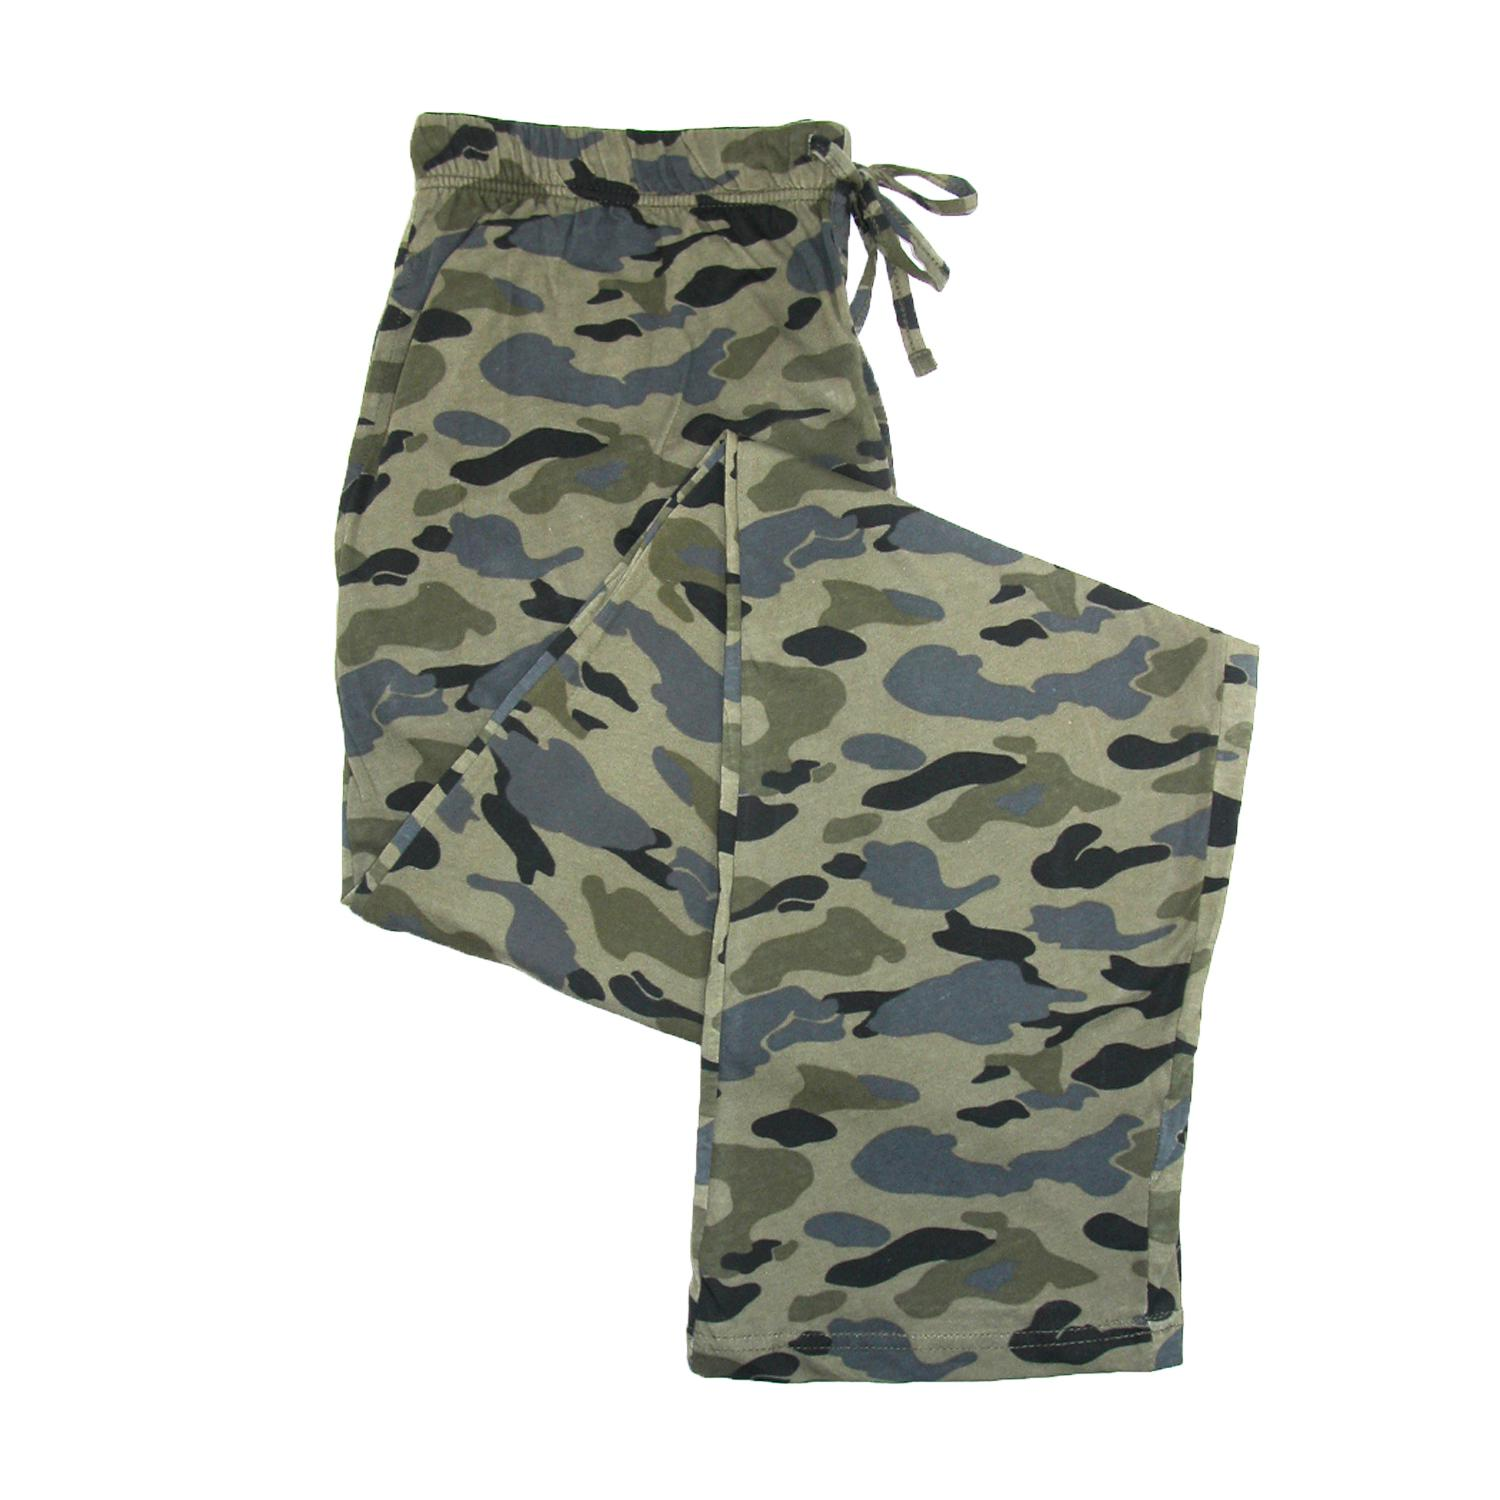 New Hanes Men S Cotton Camo Print Pajama Pants